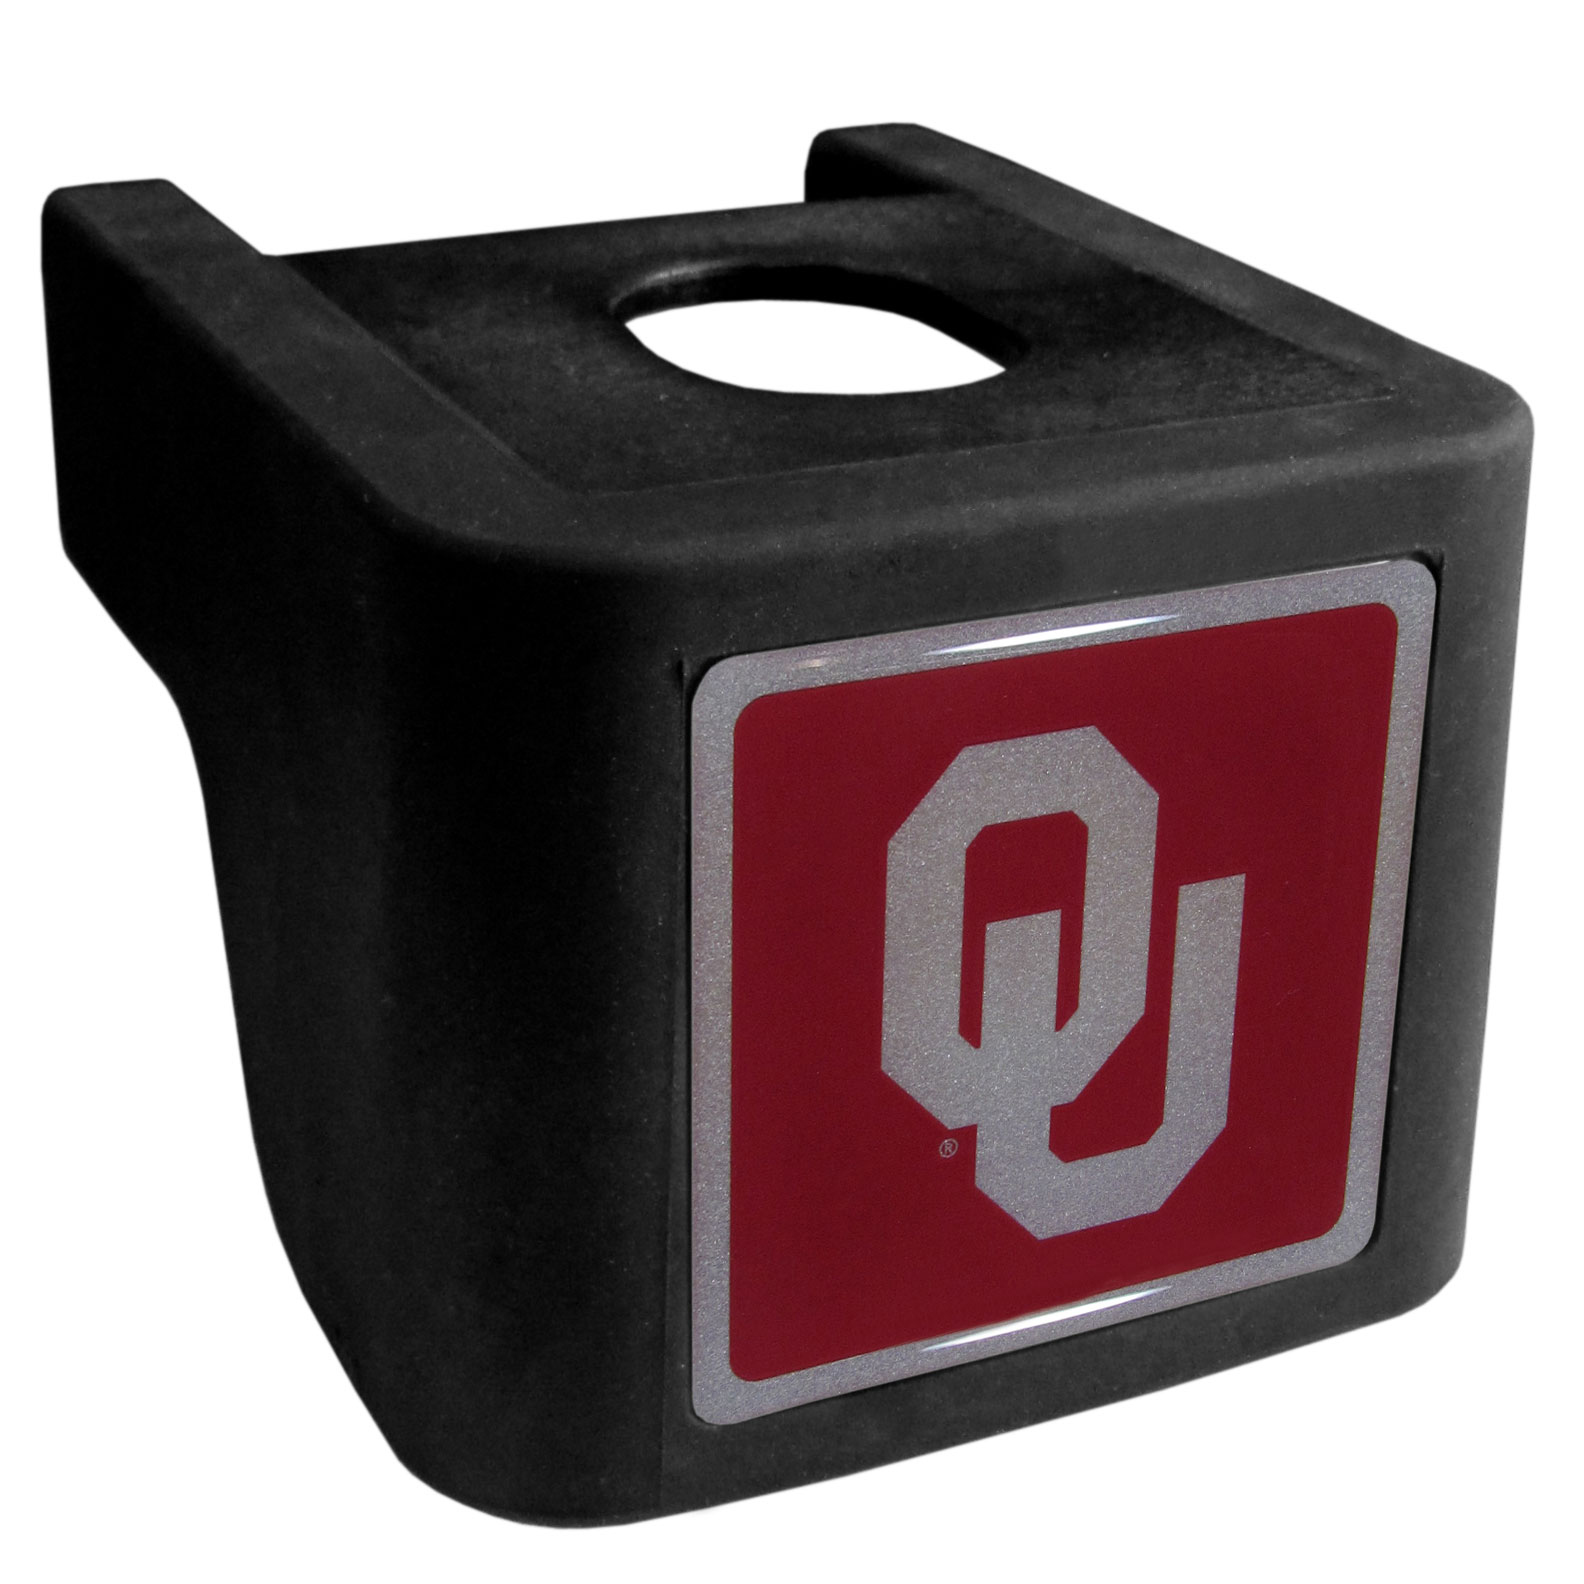 Oklahoma Sooners Shin Shield Hitch Cover - This unique hitch cover features a large Oklahoma Sooners logo. If you have ever hooked up a trailer or boat your have probably smashed your shins on the ball hitch a few times. This revolutionary shin shield hitch cover provides your much abused shins with the protection they deserve! The tough rubber hitch is rated to work with Class V hitch receivers hauling up to 17,000 gross trailer weight and 1,700 tongue weight allowing you to leave it on while hauling.